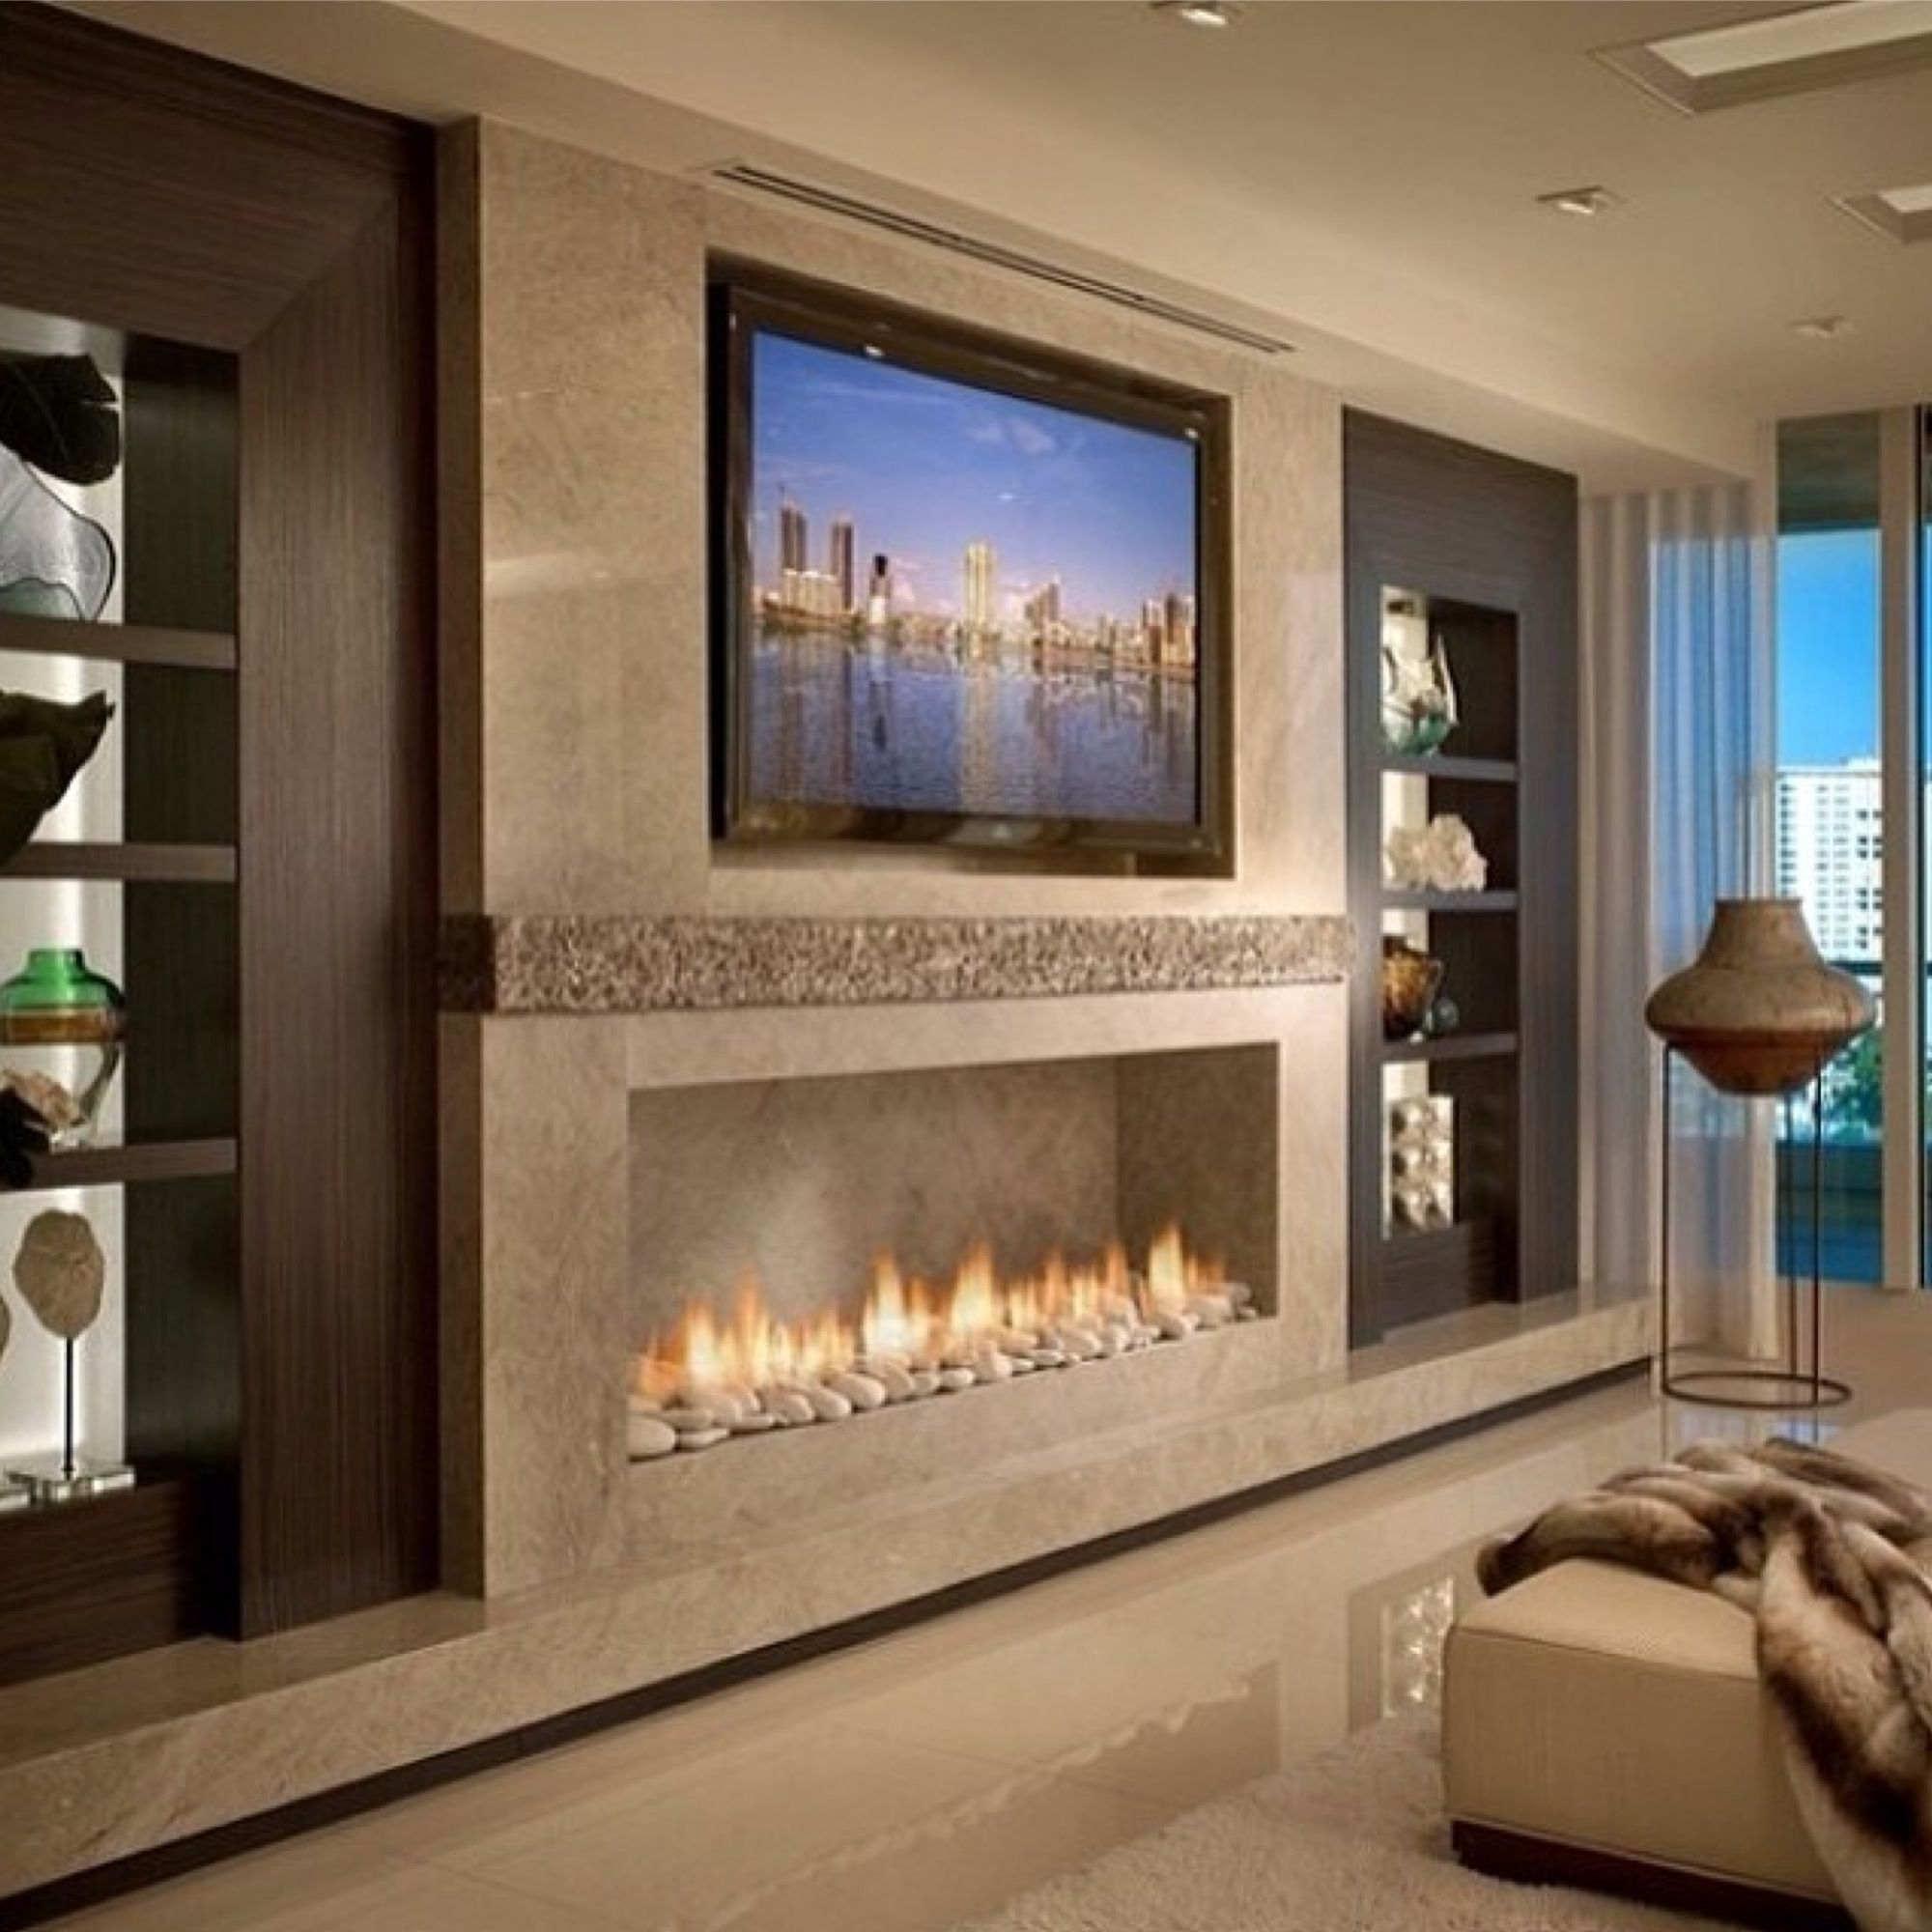 Pin by nunzia della rocca on houses and places pinterest - Bedroom electric fireplace ideas ...